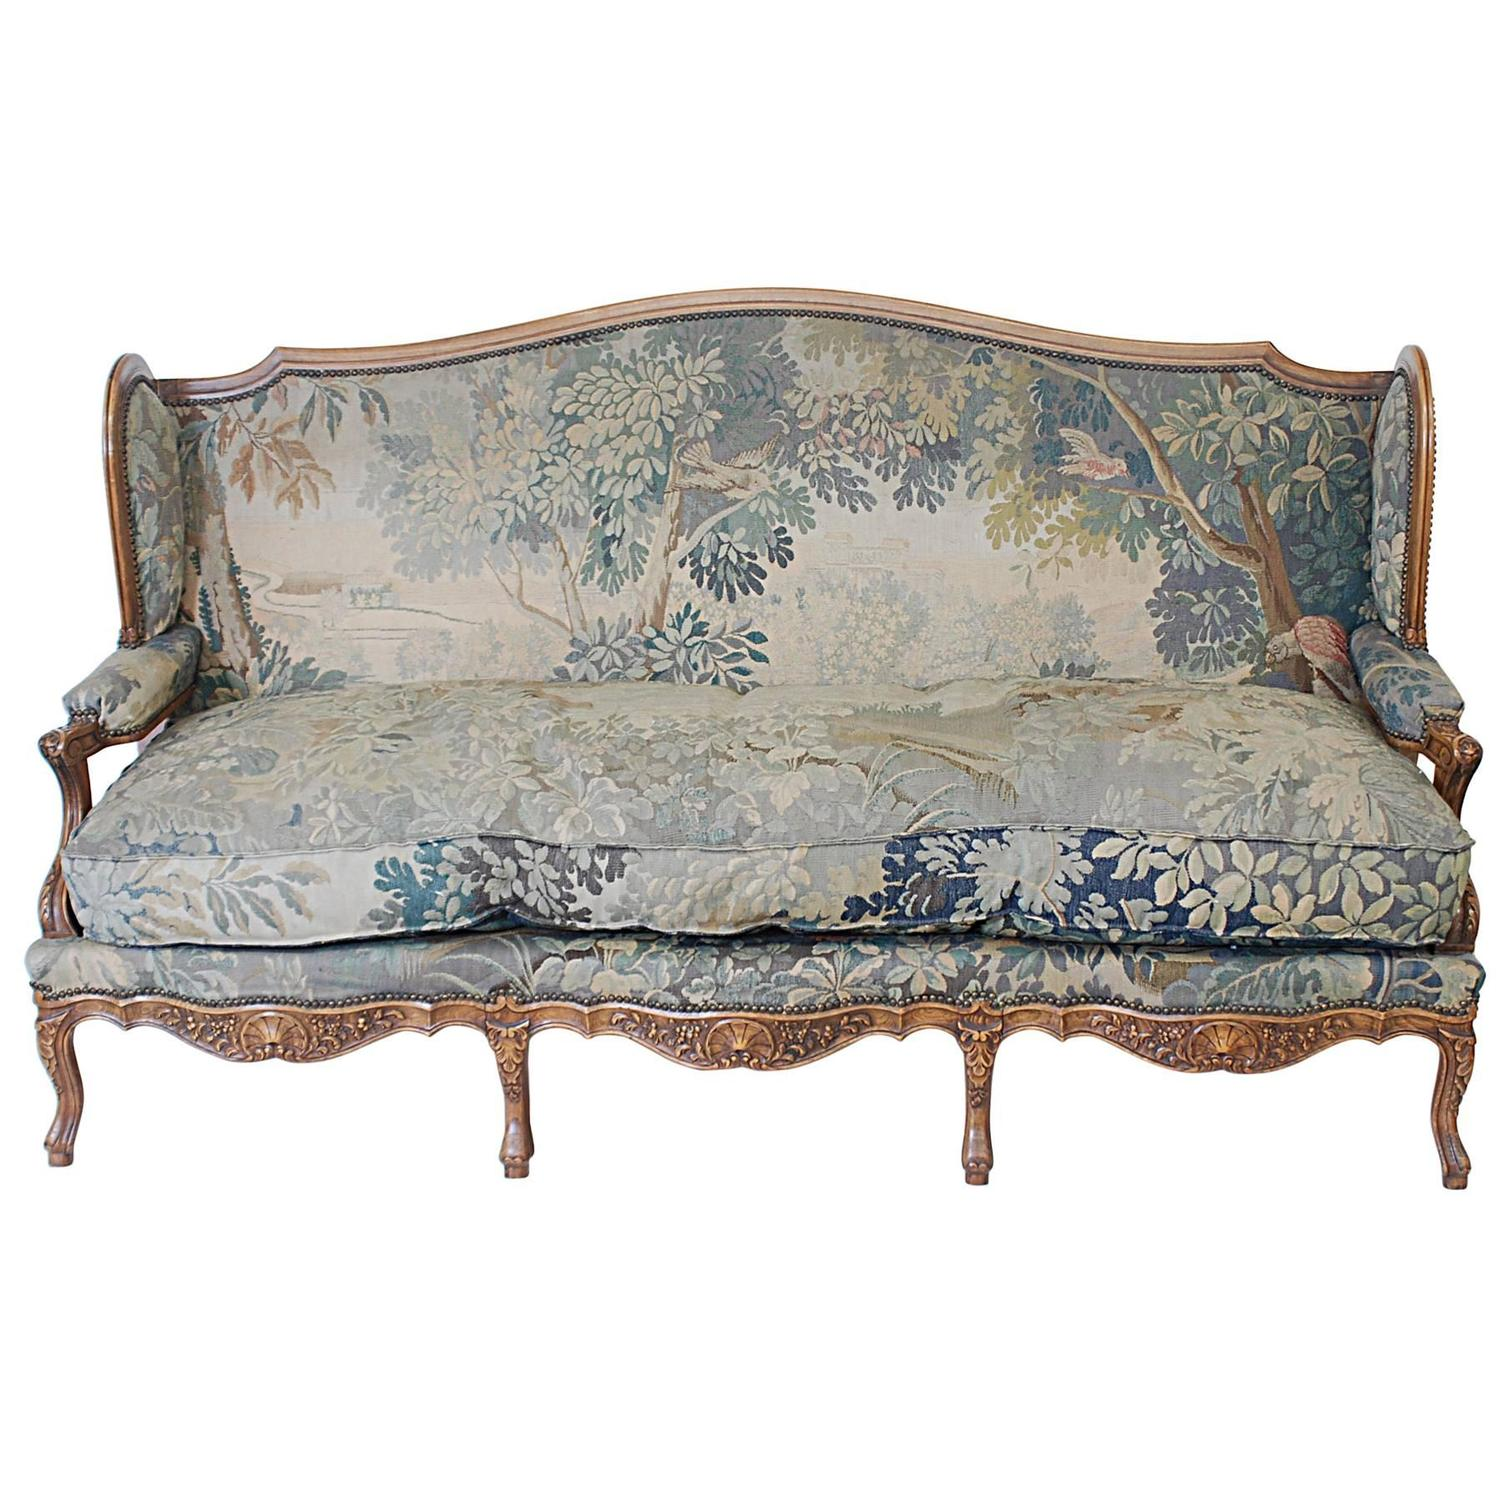 Louis xv style flemish canape at 1stdibs for Canape style louis xv